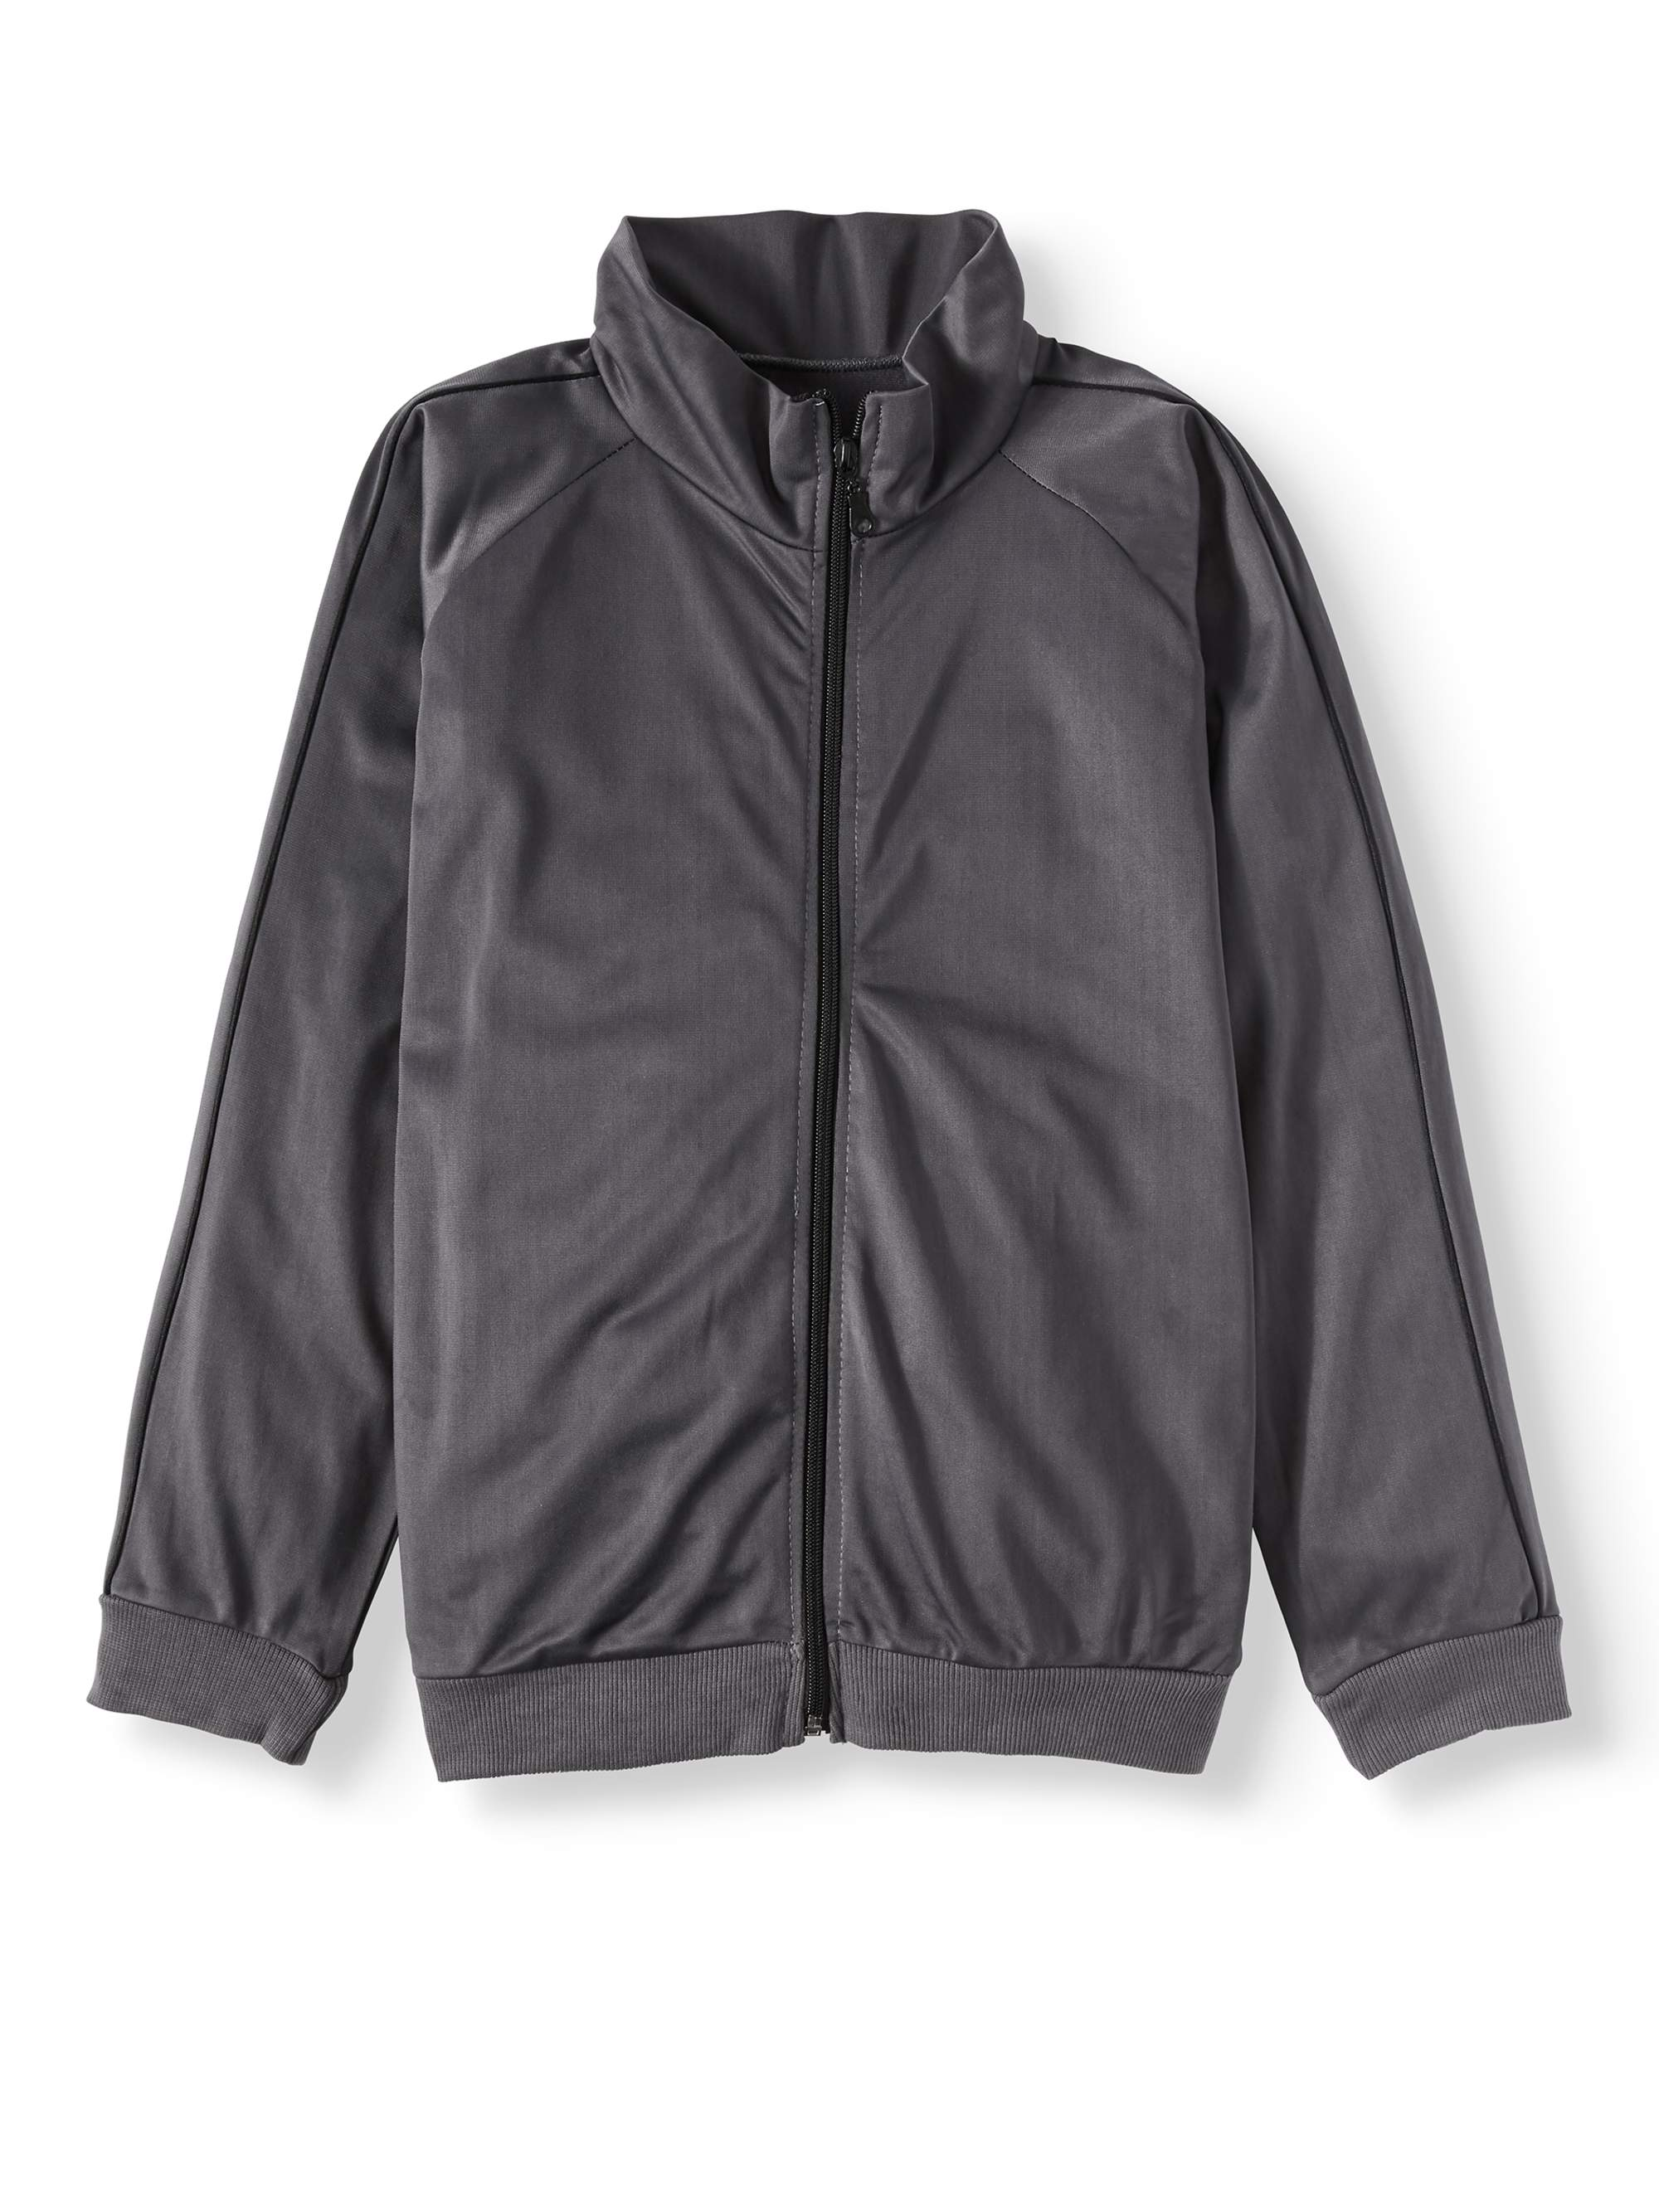 Tricot Performance Zip Up Track Jacket (Big Boys)